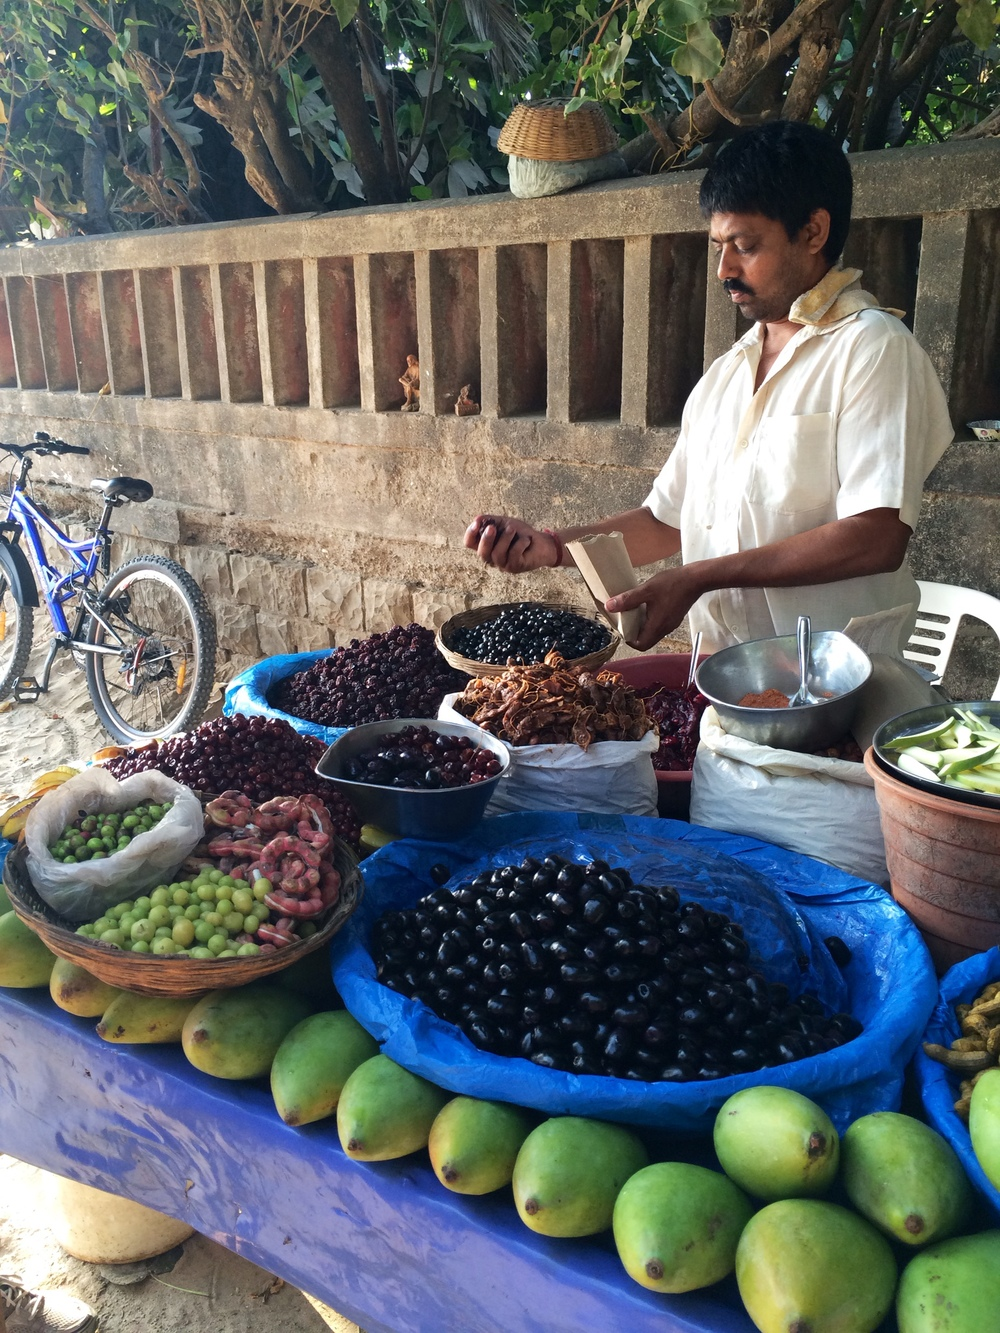 Fruit vendor at Juhu Beach in Mumbai